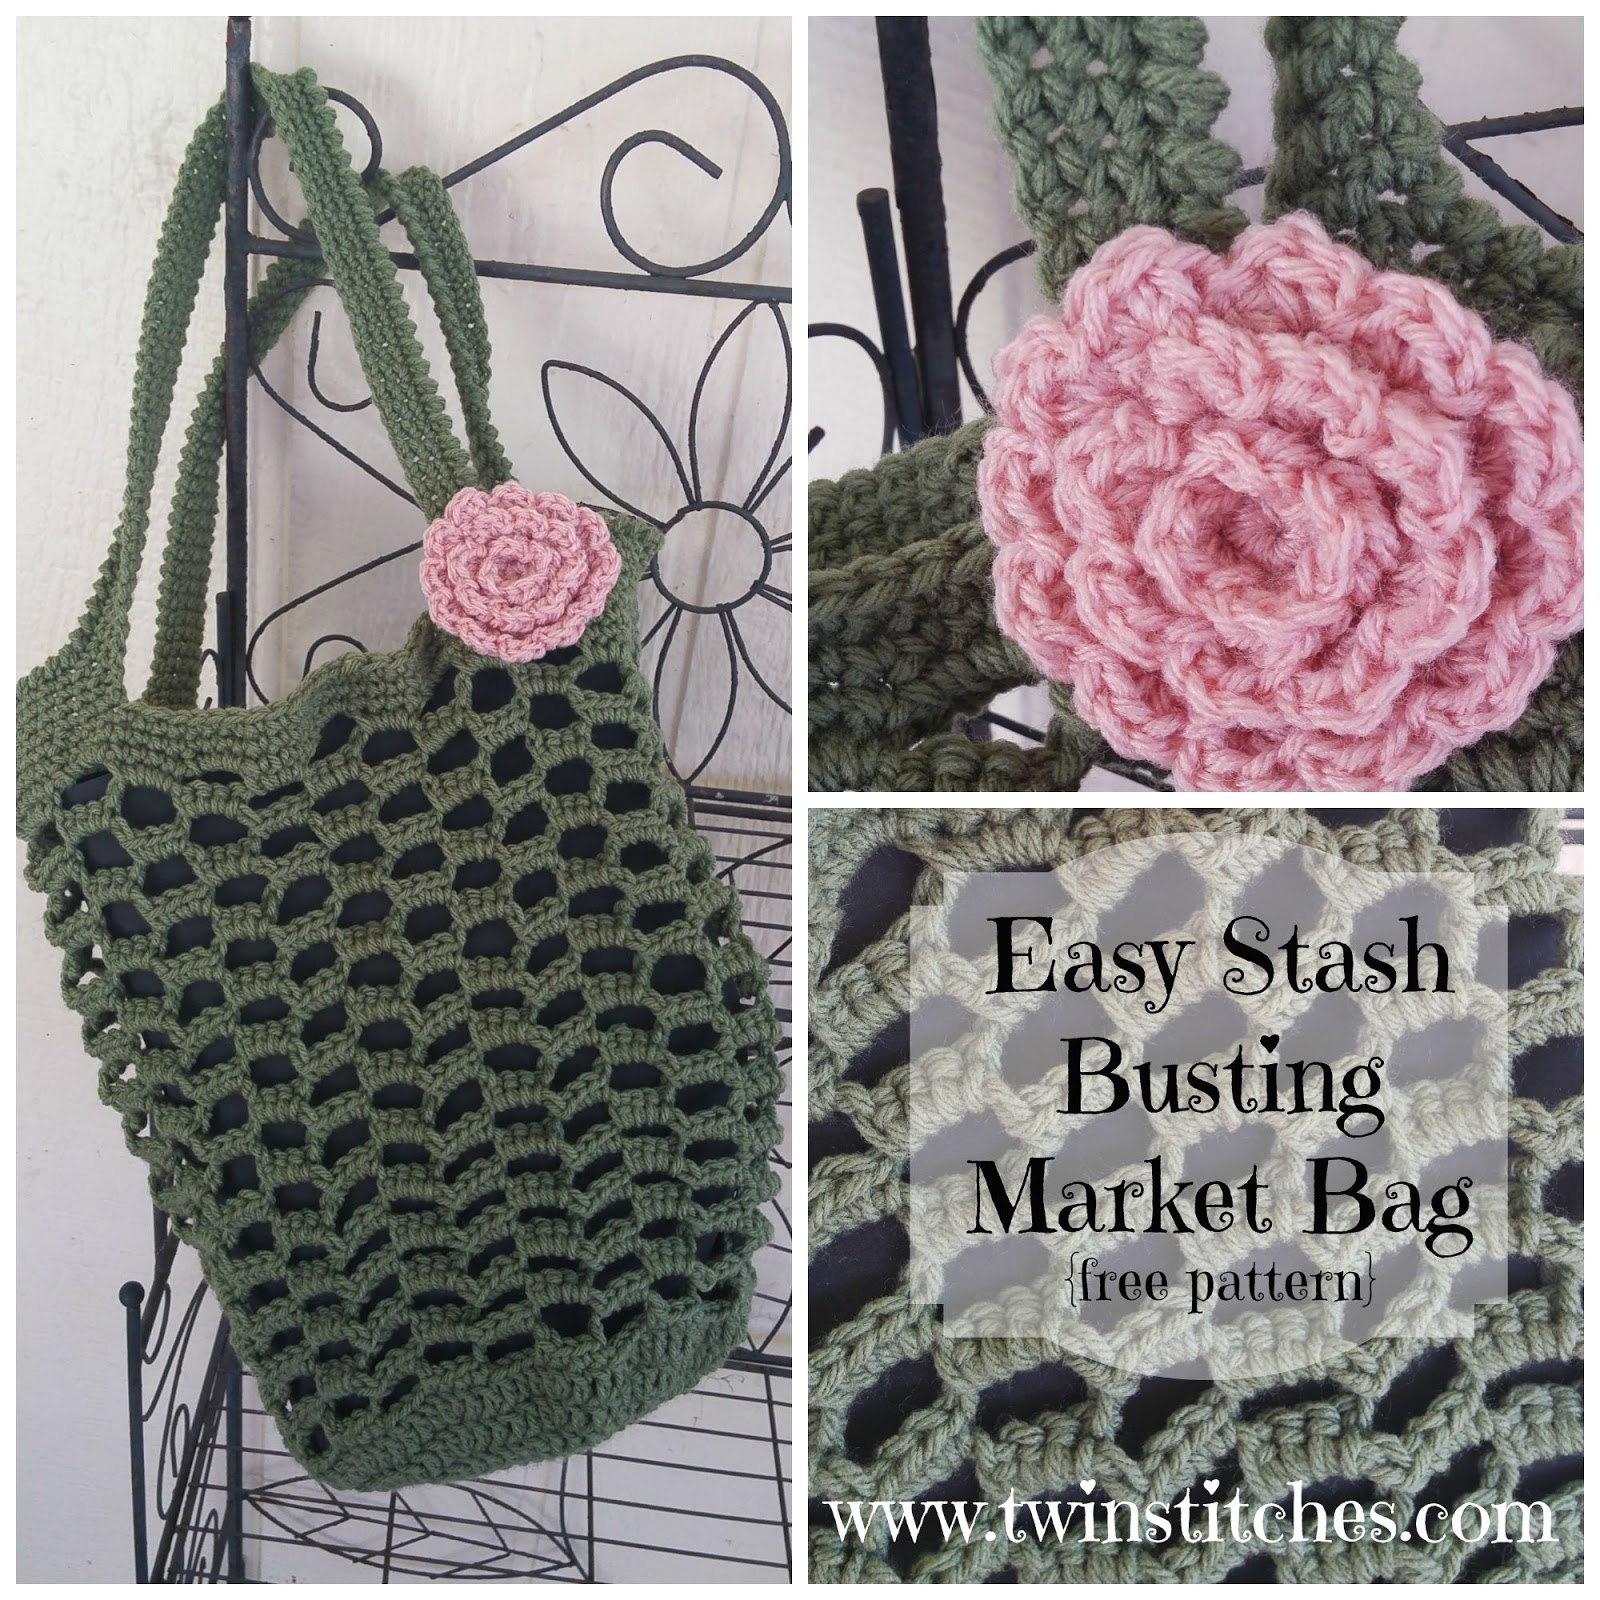 Tw-In Stitches: Easy Stashbusting Market Bag - Free Pattern | Tw-In ...